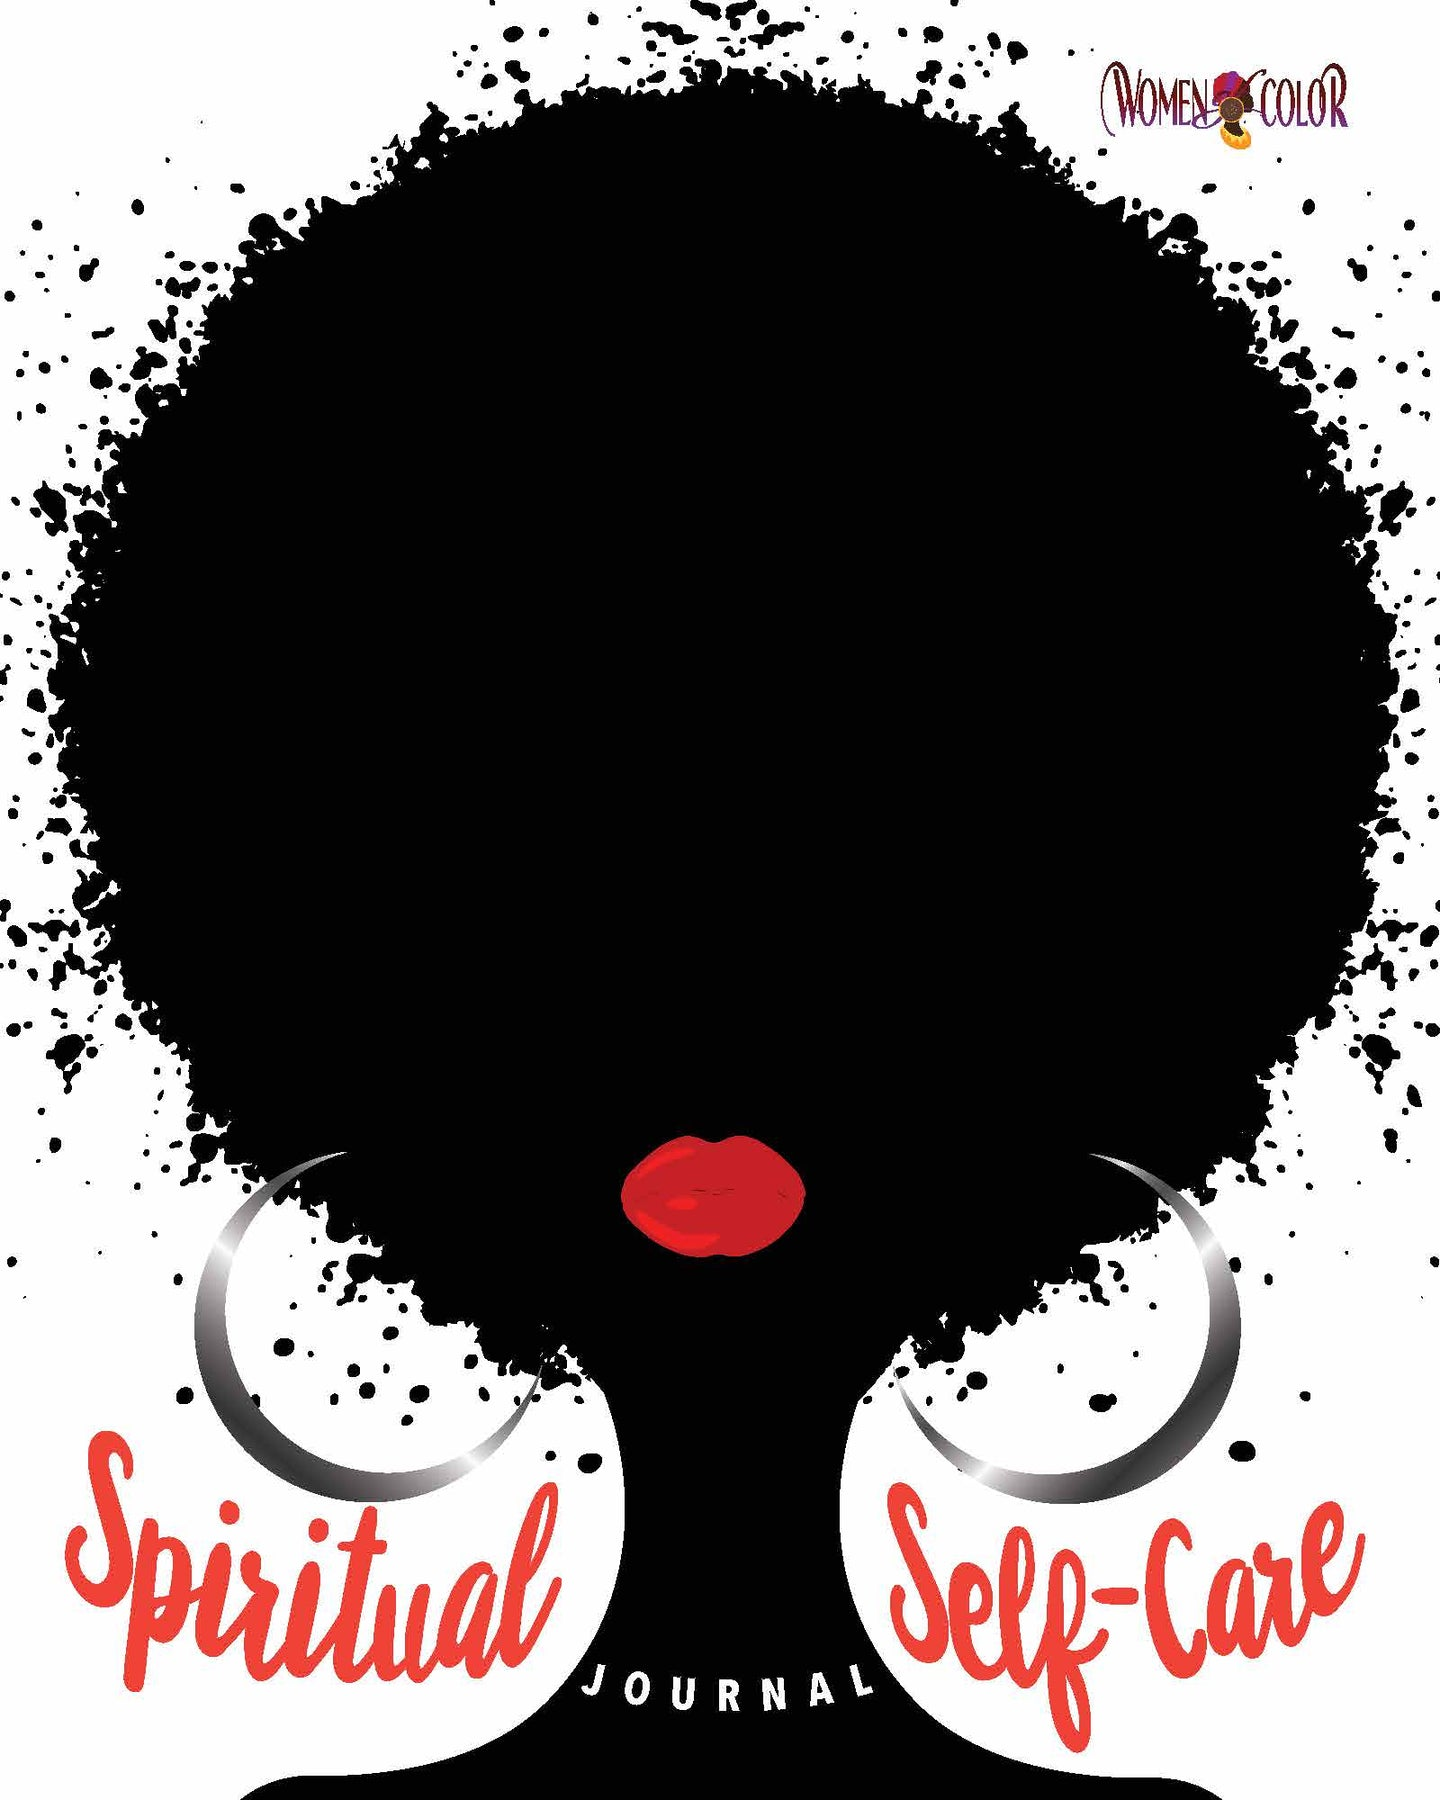 Women of Color Spiritual Self-Care Journal - Black Edition with lay-flat binding